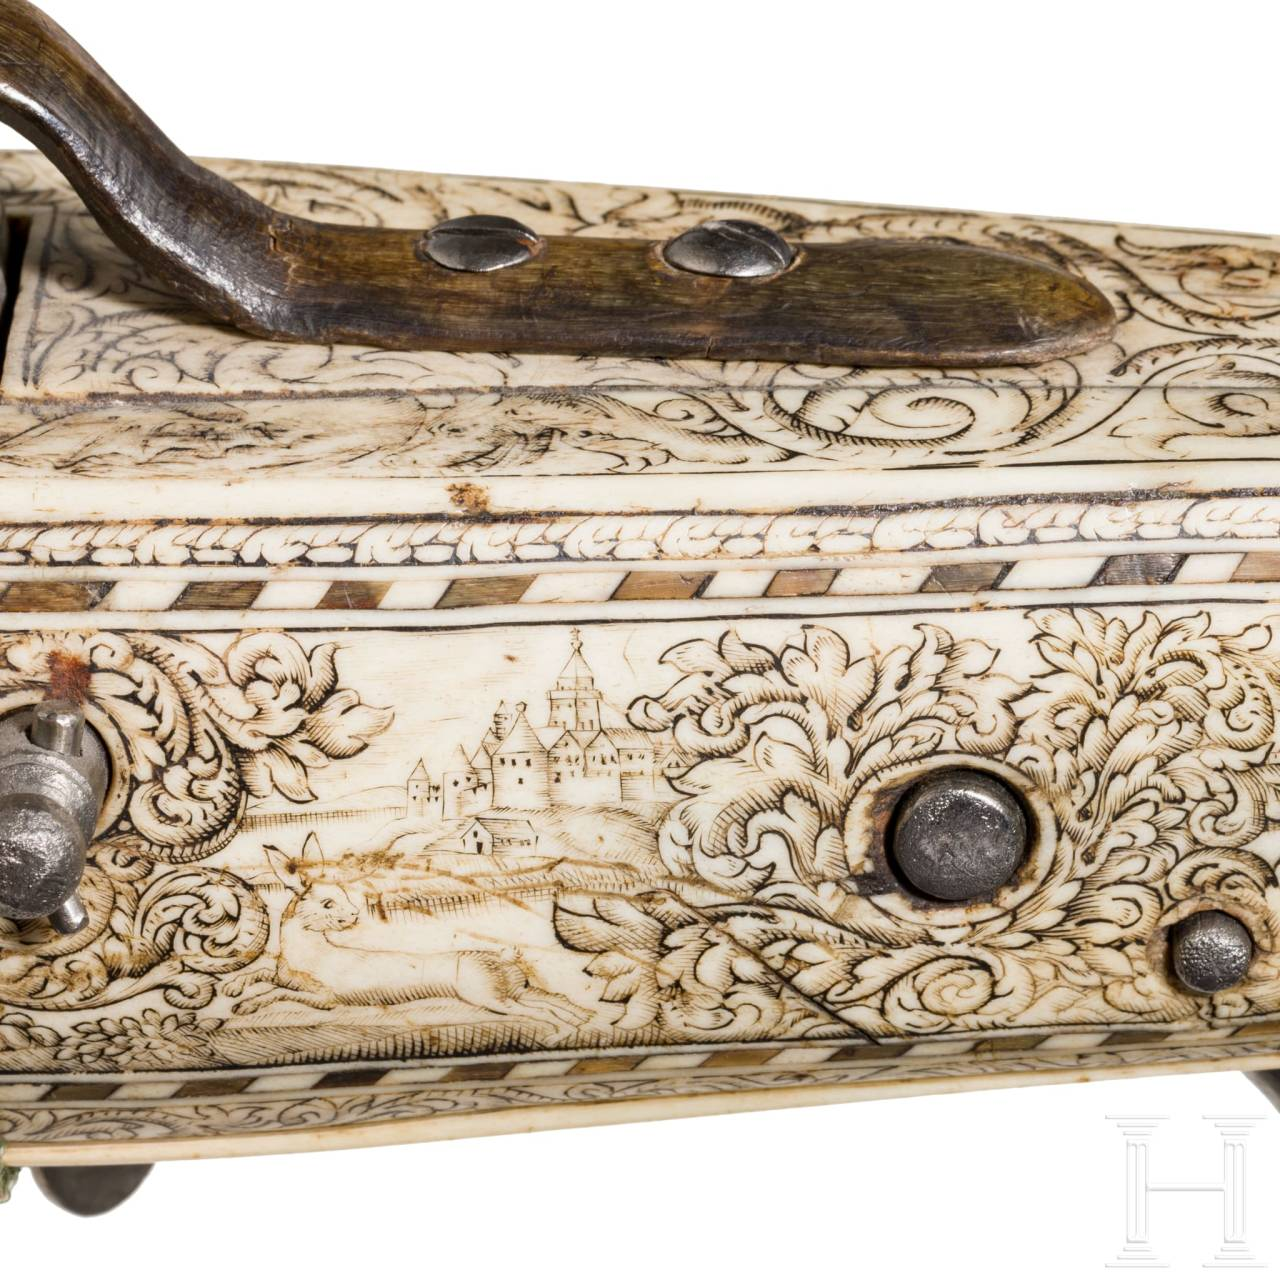 A crossbow with lavish bone inlays by Johann Bensheimer the Elder, Dresden, late 17th century